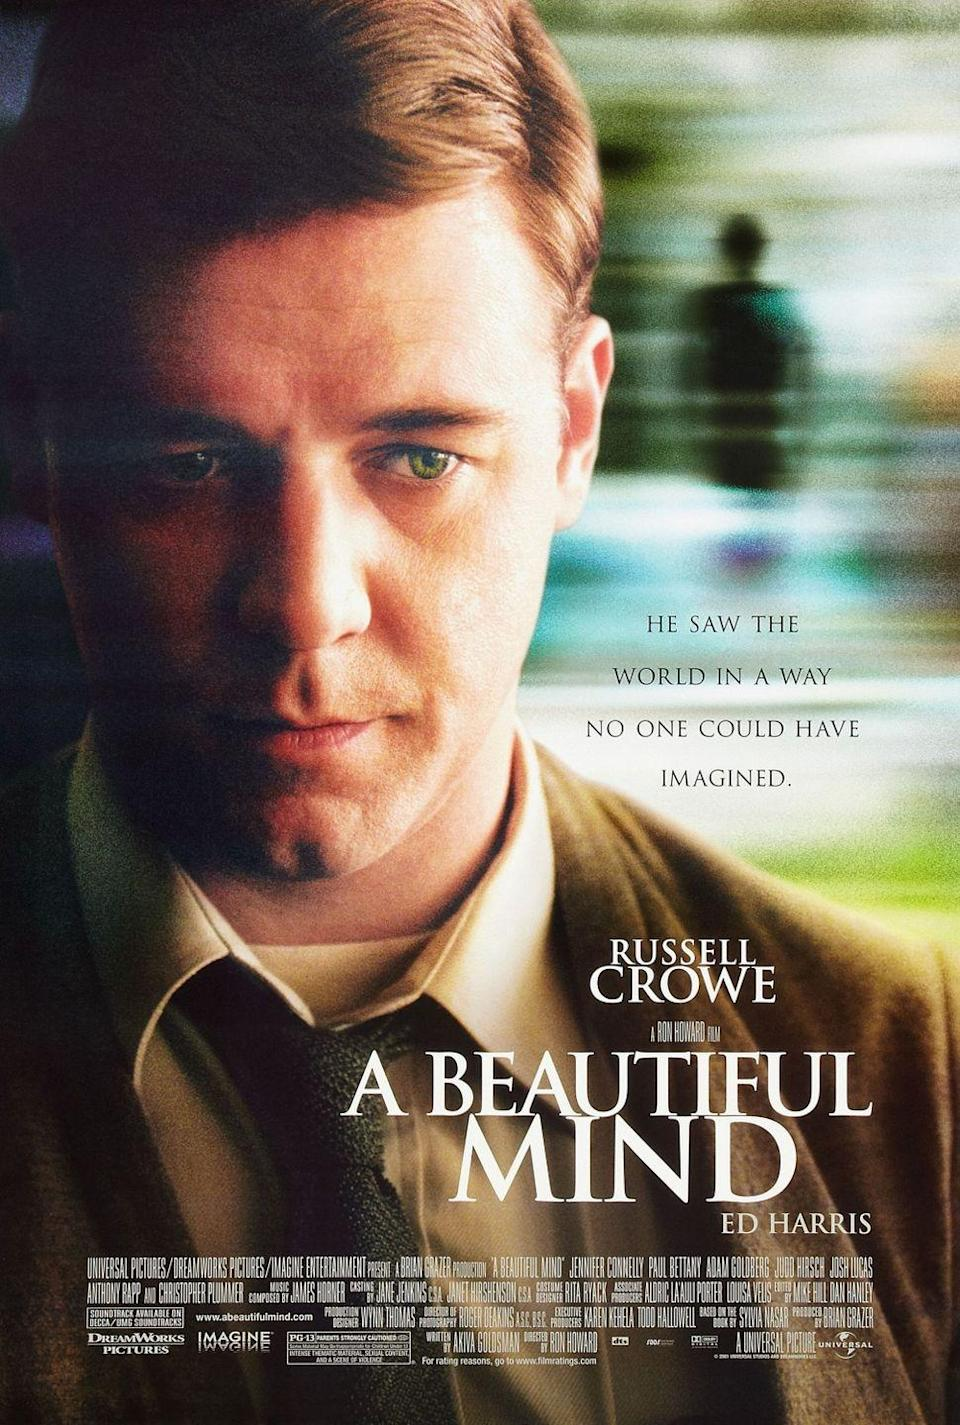 <p>A Beautiful Mind was — simply beautiful. Released on December 21, 2001, the film took home Oscars for Best Picture, Best Supporting Actress (Jennifer Connelly), Best Director (Ron Howard) and Best Adapted Screenplay. John Forbes Nash Jr. (Russell Crowe) is a mathematical genius who found himself on the cusp of worldwide acclaim from one of his discoveries. His story is inspired by events in the biography A Beautiful Mind by Sylvia Nasar. </p>